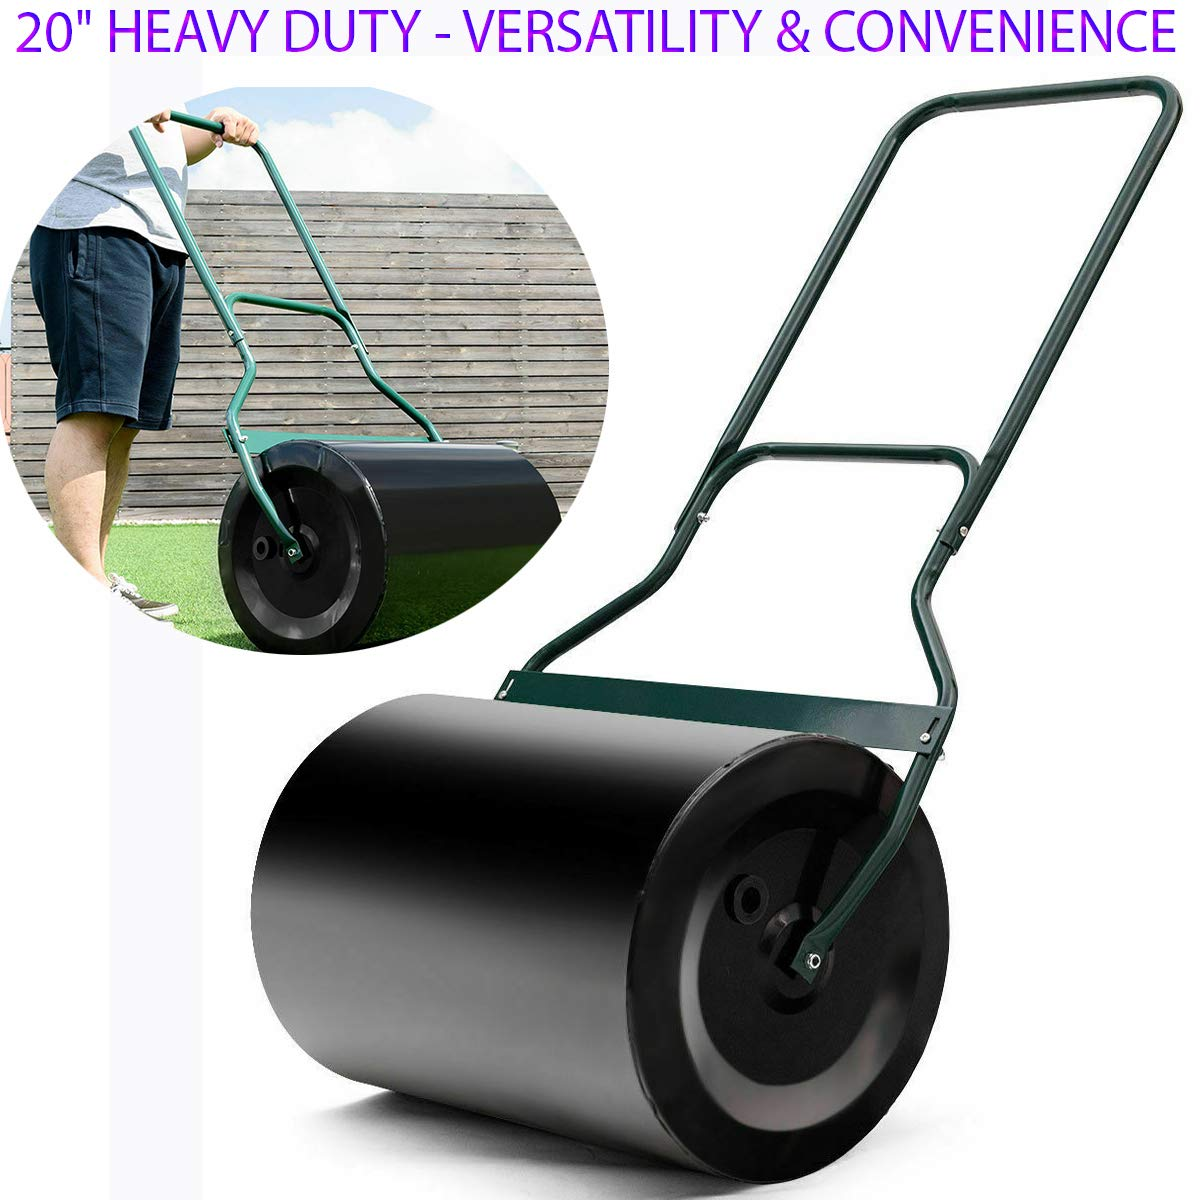 20'' Heavy Duty Poly Push Tow Lawn Roller Poly Roller Green Sprayed Surface, Smooth Surface, Not Easy to Rust, Beautiful & Fashionable Color with U-Handle for Comfortable Pull & Push Use by Sunnady